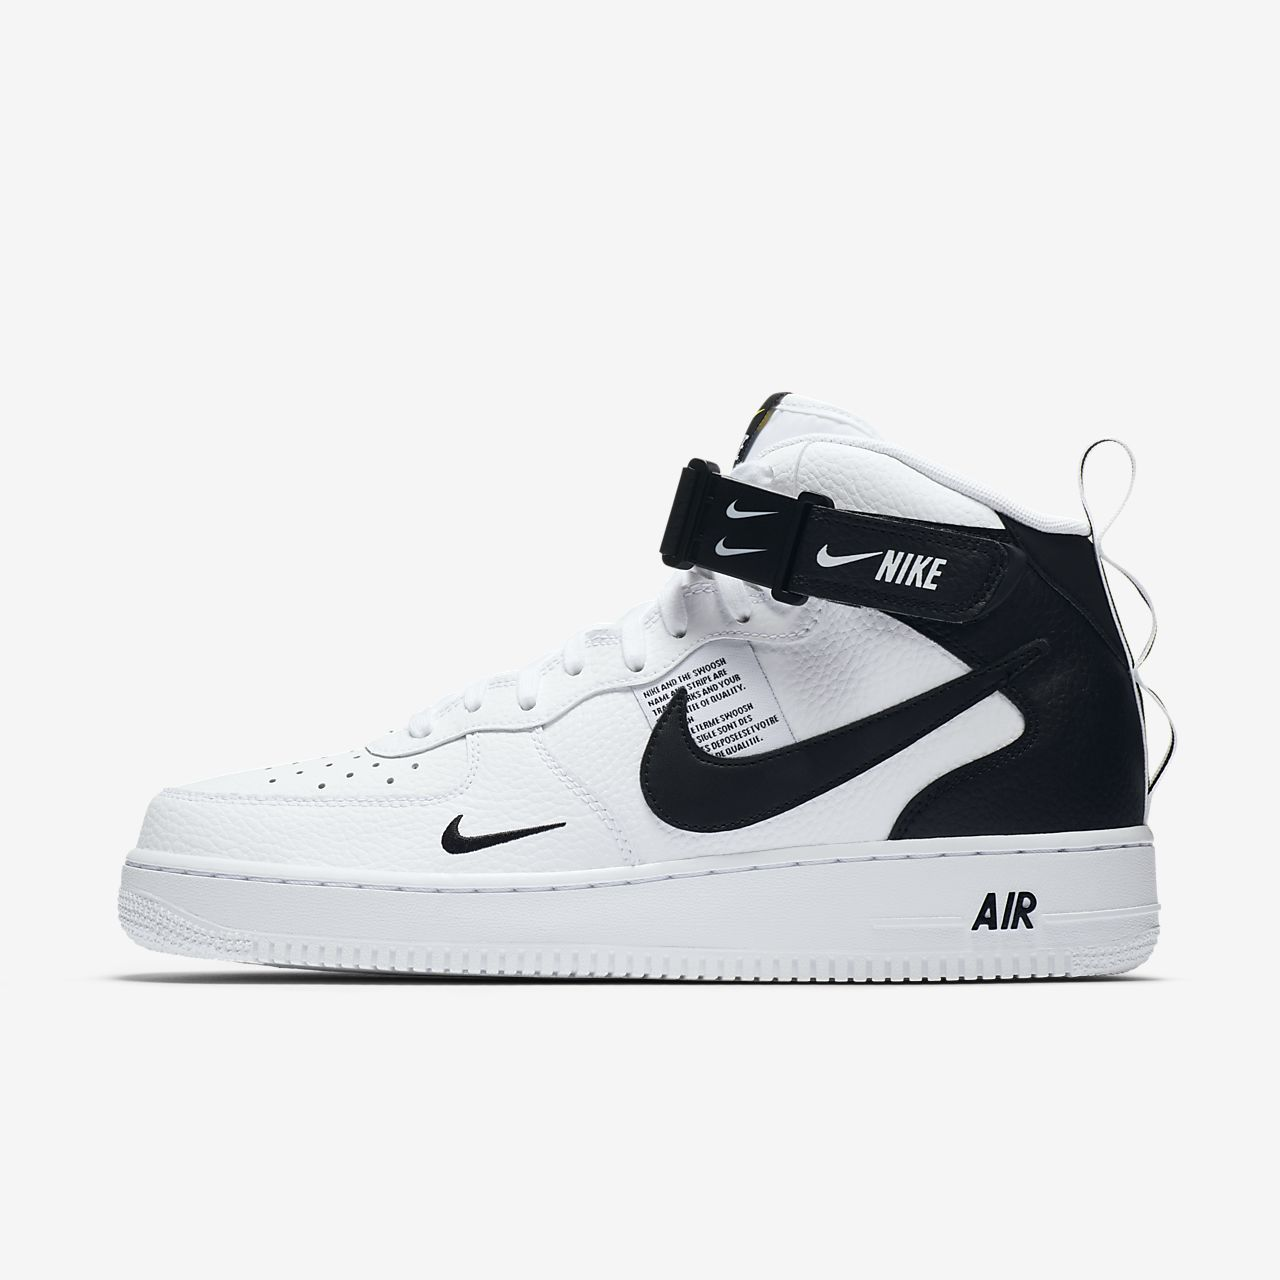 buy online d793d 6f20d Low Resolution Nike Air Force 1 07 Mid LV8 herresko Nike Air Force 1 07 Mid  LV8 herresko